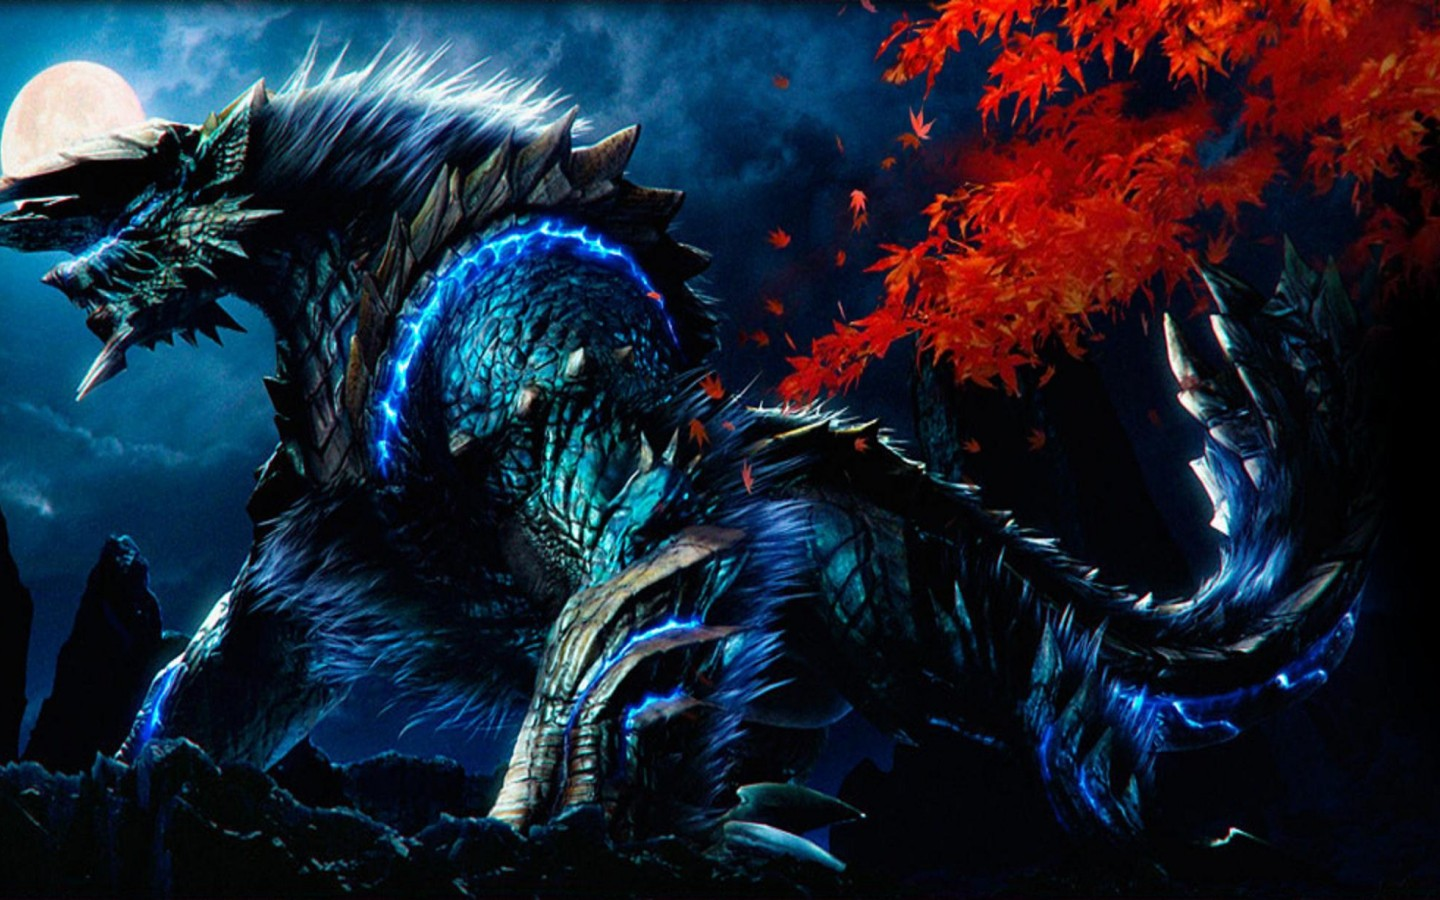 ZINOGRE Computer Wallpapers Desktop Backgrounds 1440x900 ID 1440x900